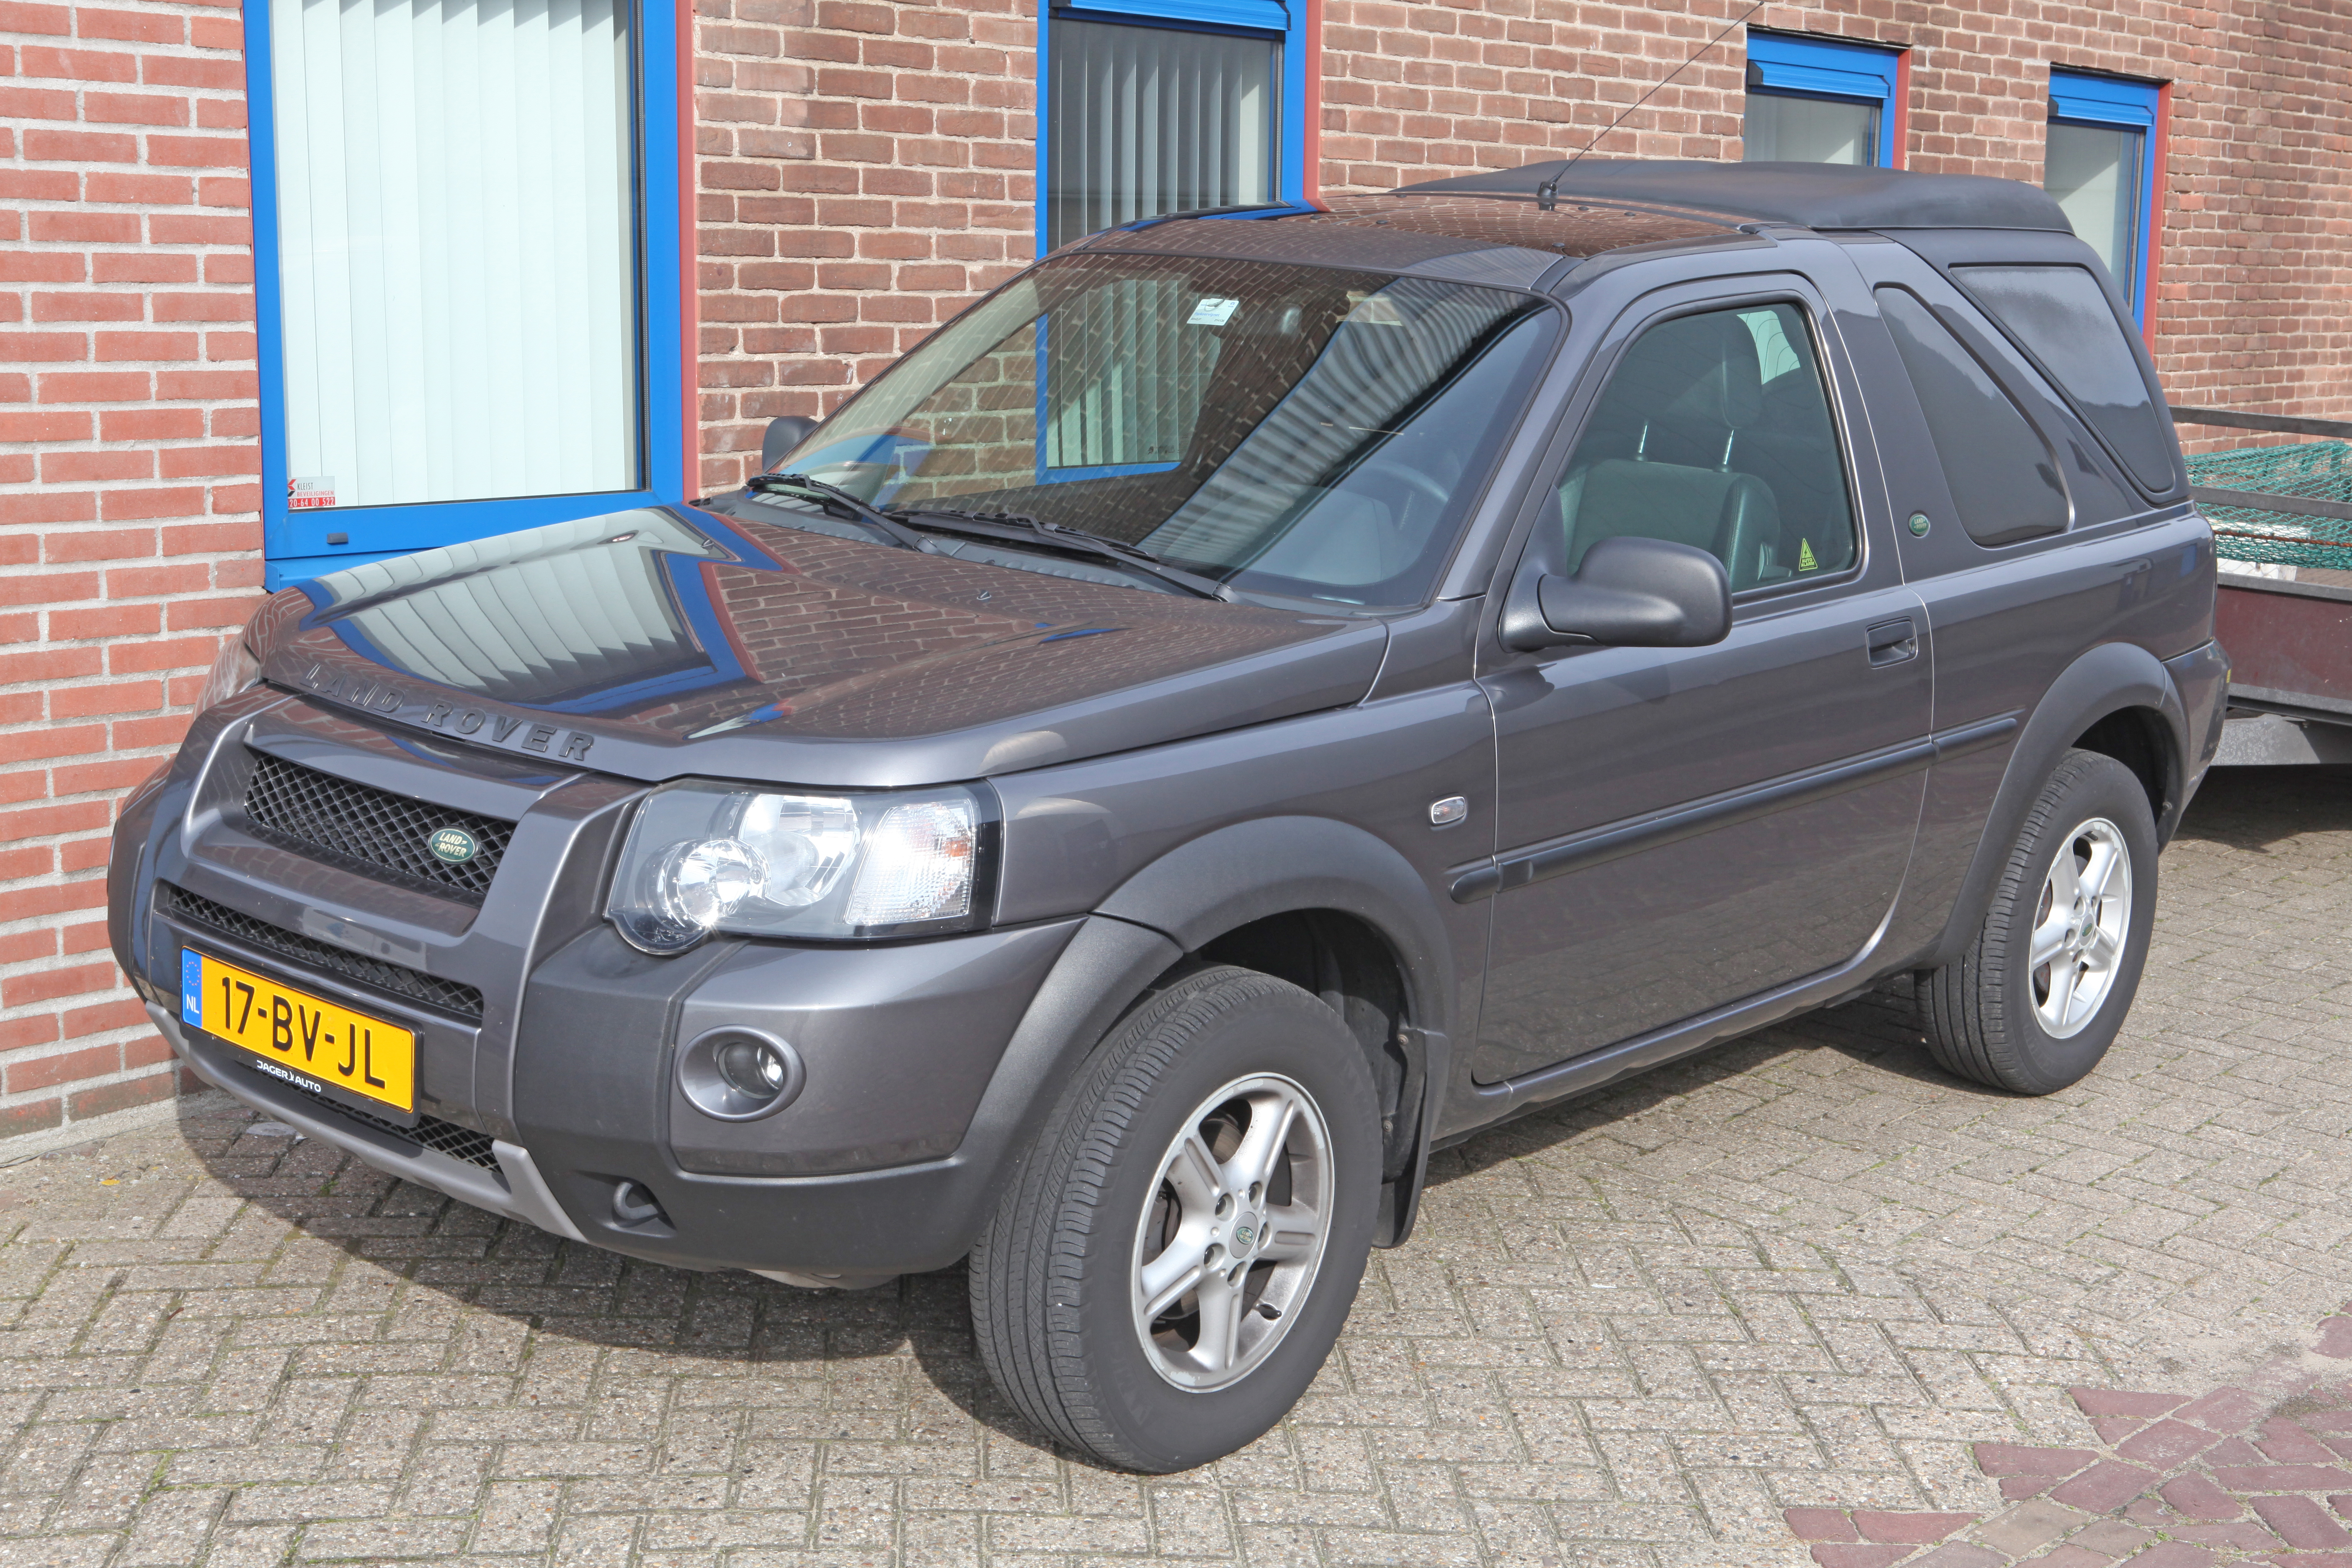 File:2005 Land Rover Freelander 2.0 TD 4 Automatic 3 door Commercial ...